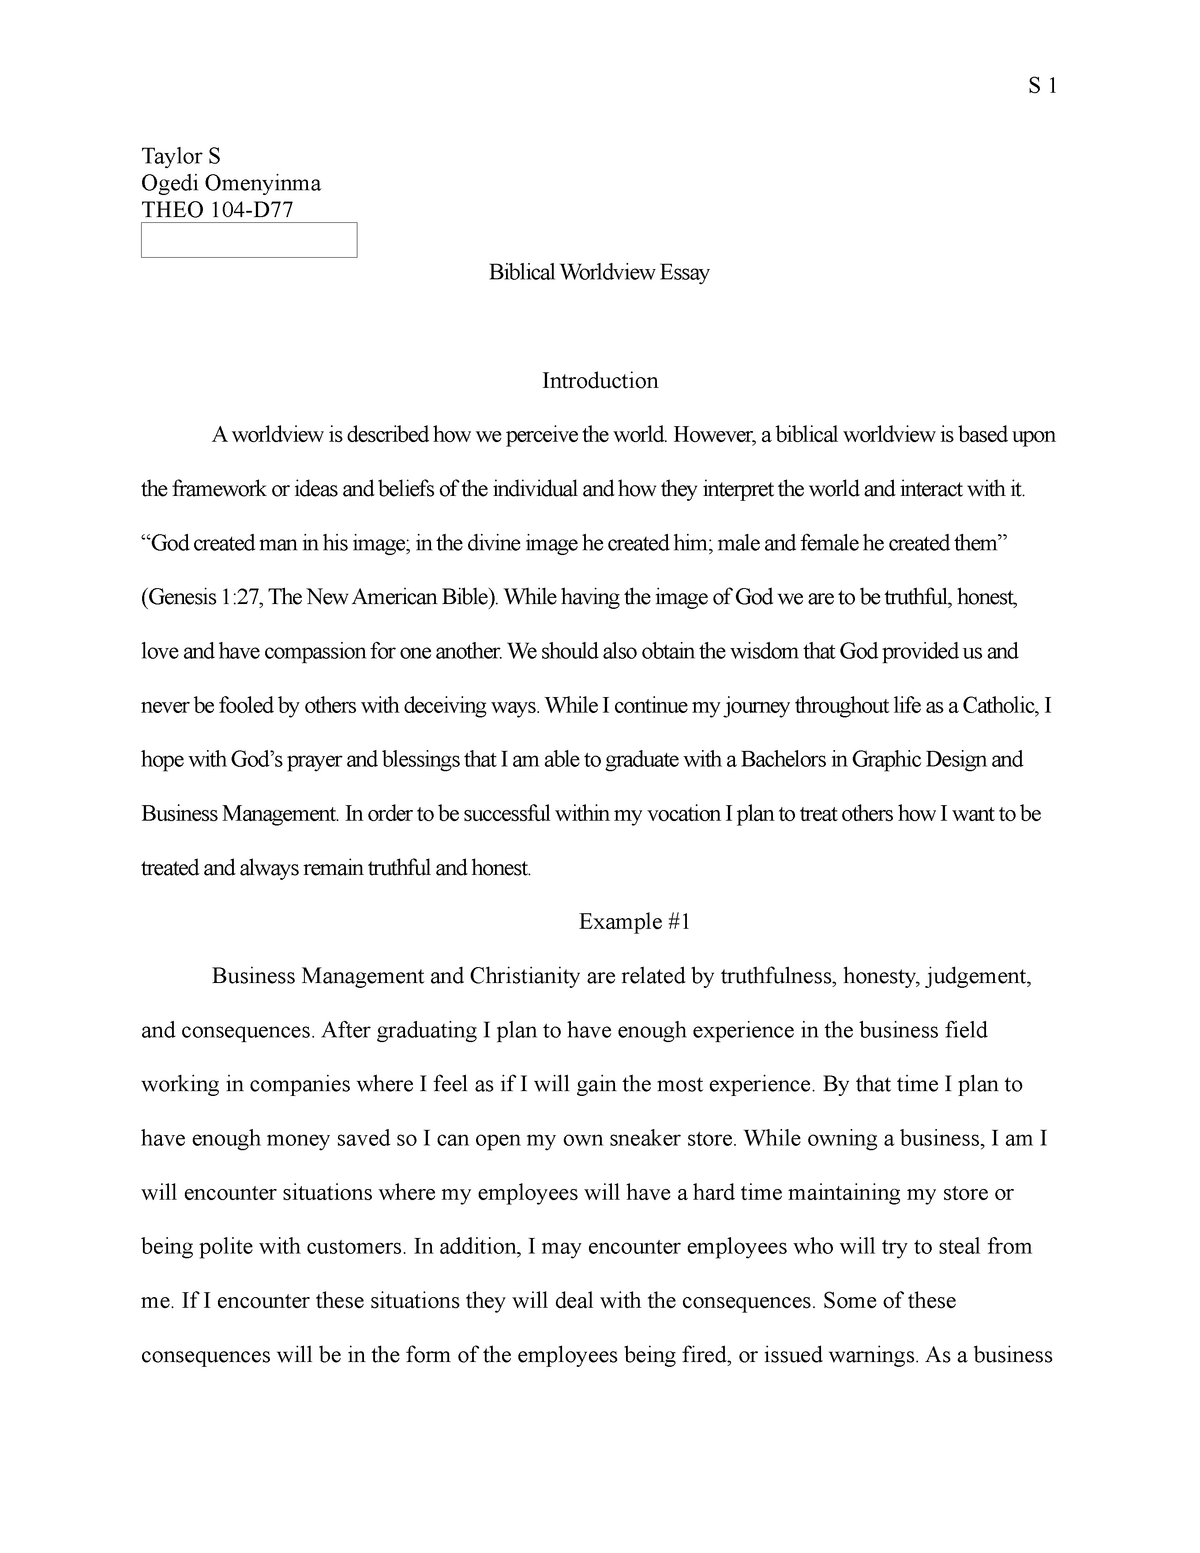 My Personal Worldview Free Essay Example